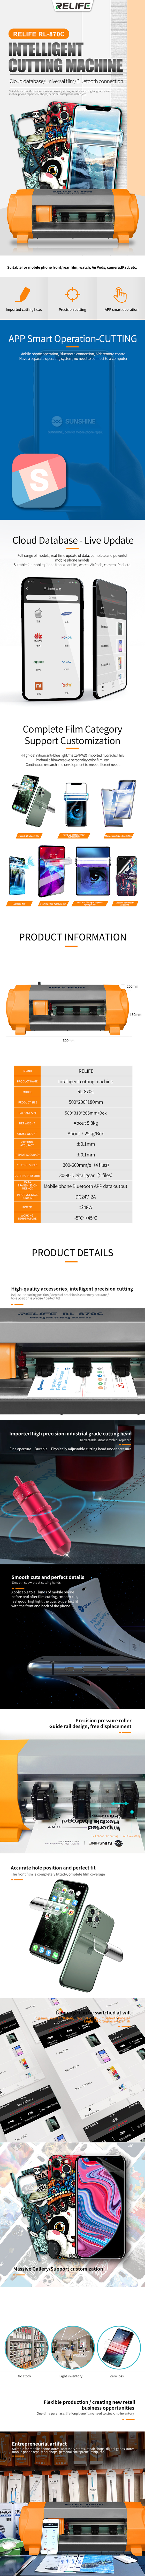 RELIFE RL-870C Intelligent Cloud Film Cutting Machine Complete Film Category Support CustomizationRELIFE RL-870C Intelligent Cloud Film Cutting Machine Complete Film Category Support Customization